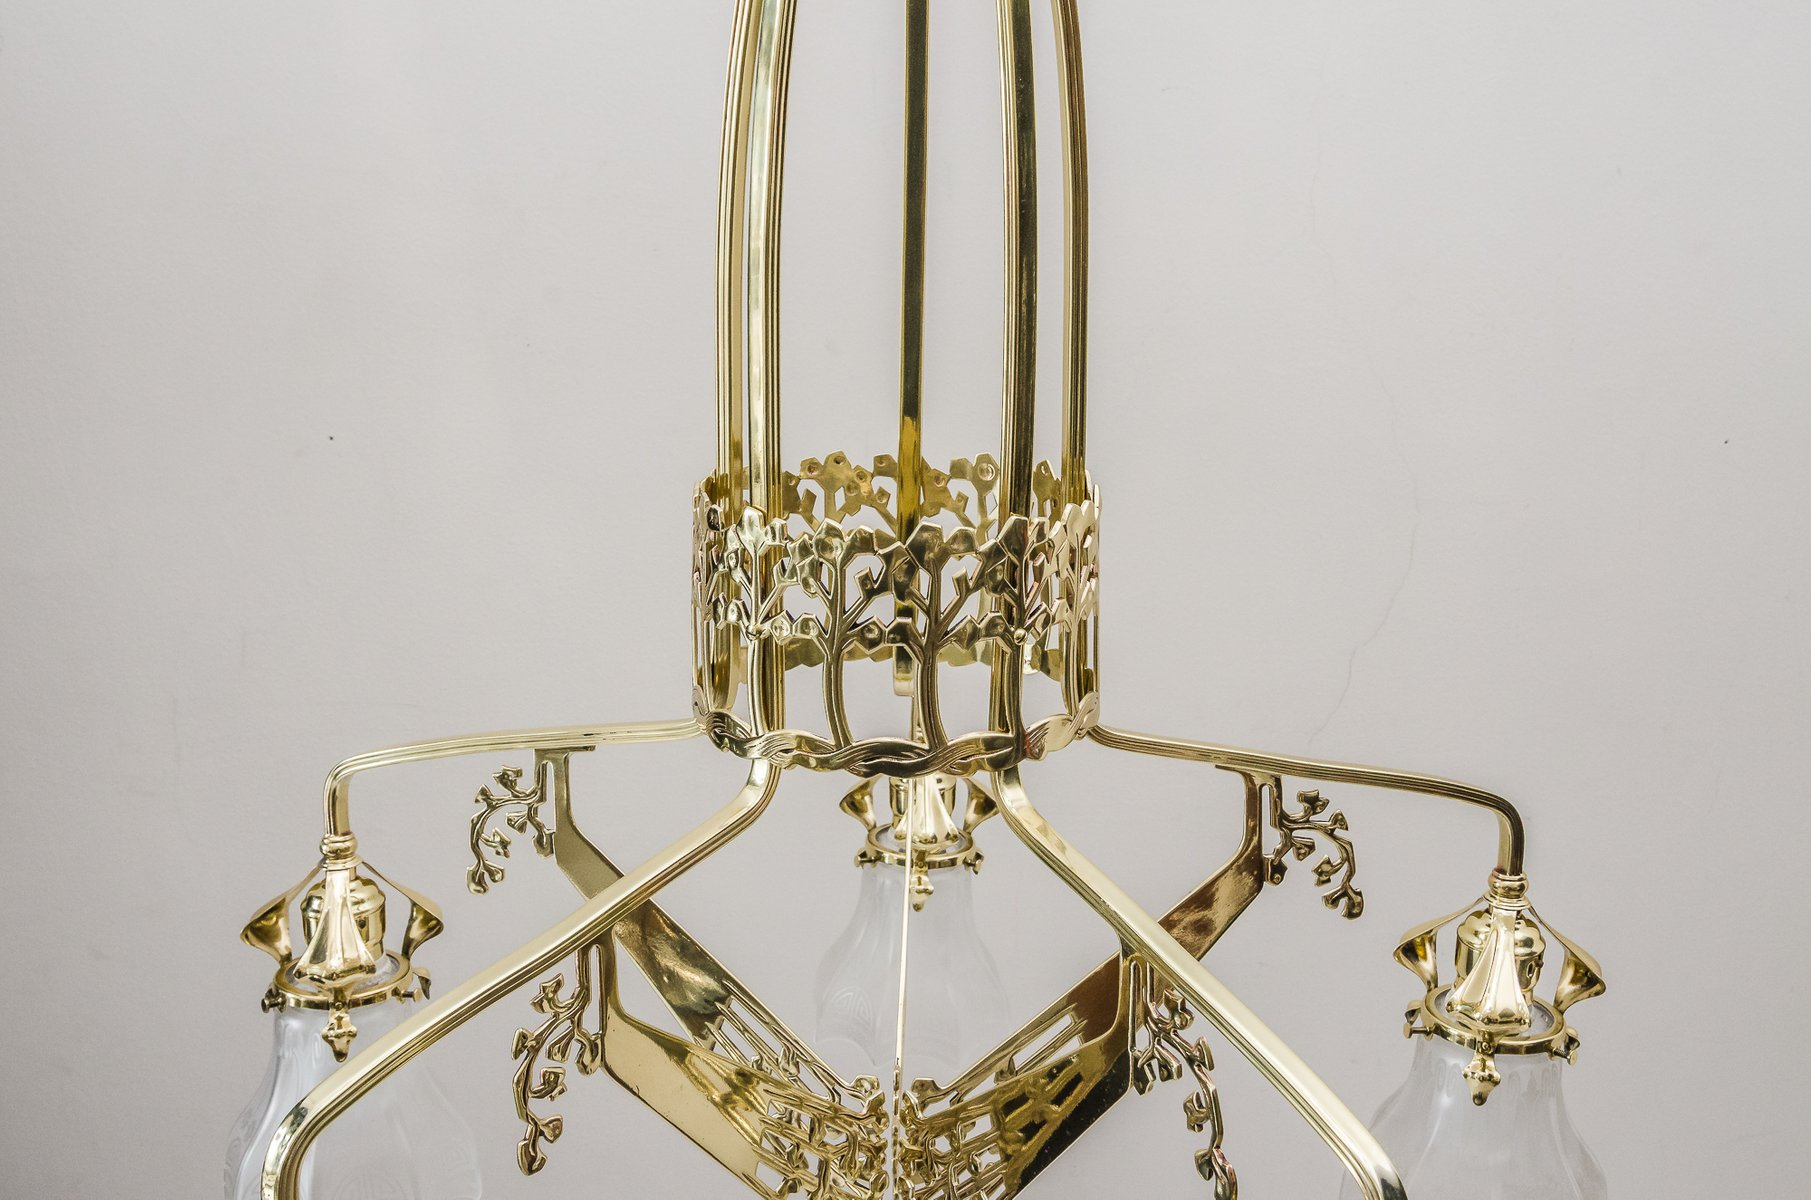 Art Nouveau Chandelier 1900s 10 11 167 00 Per Piece